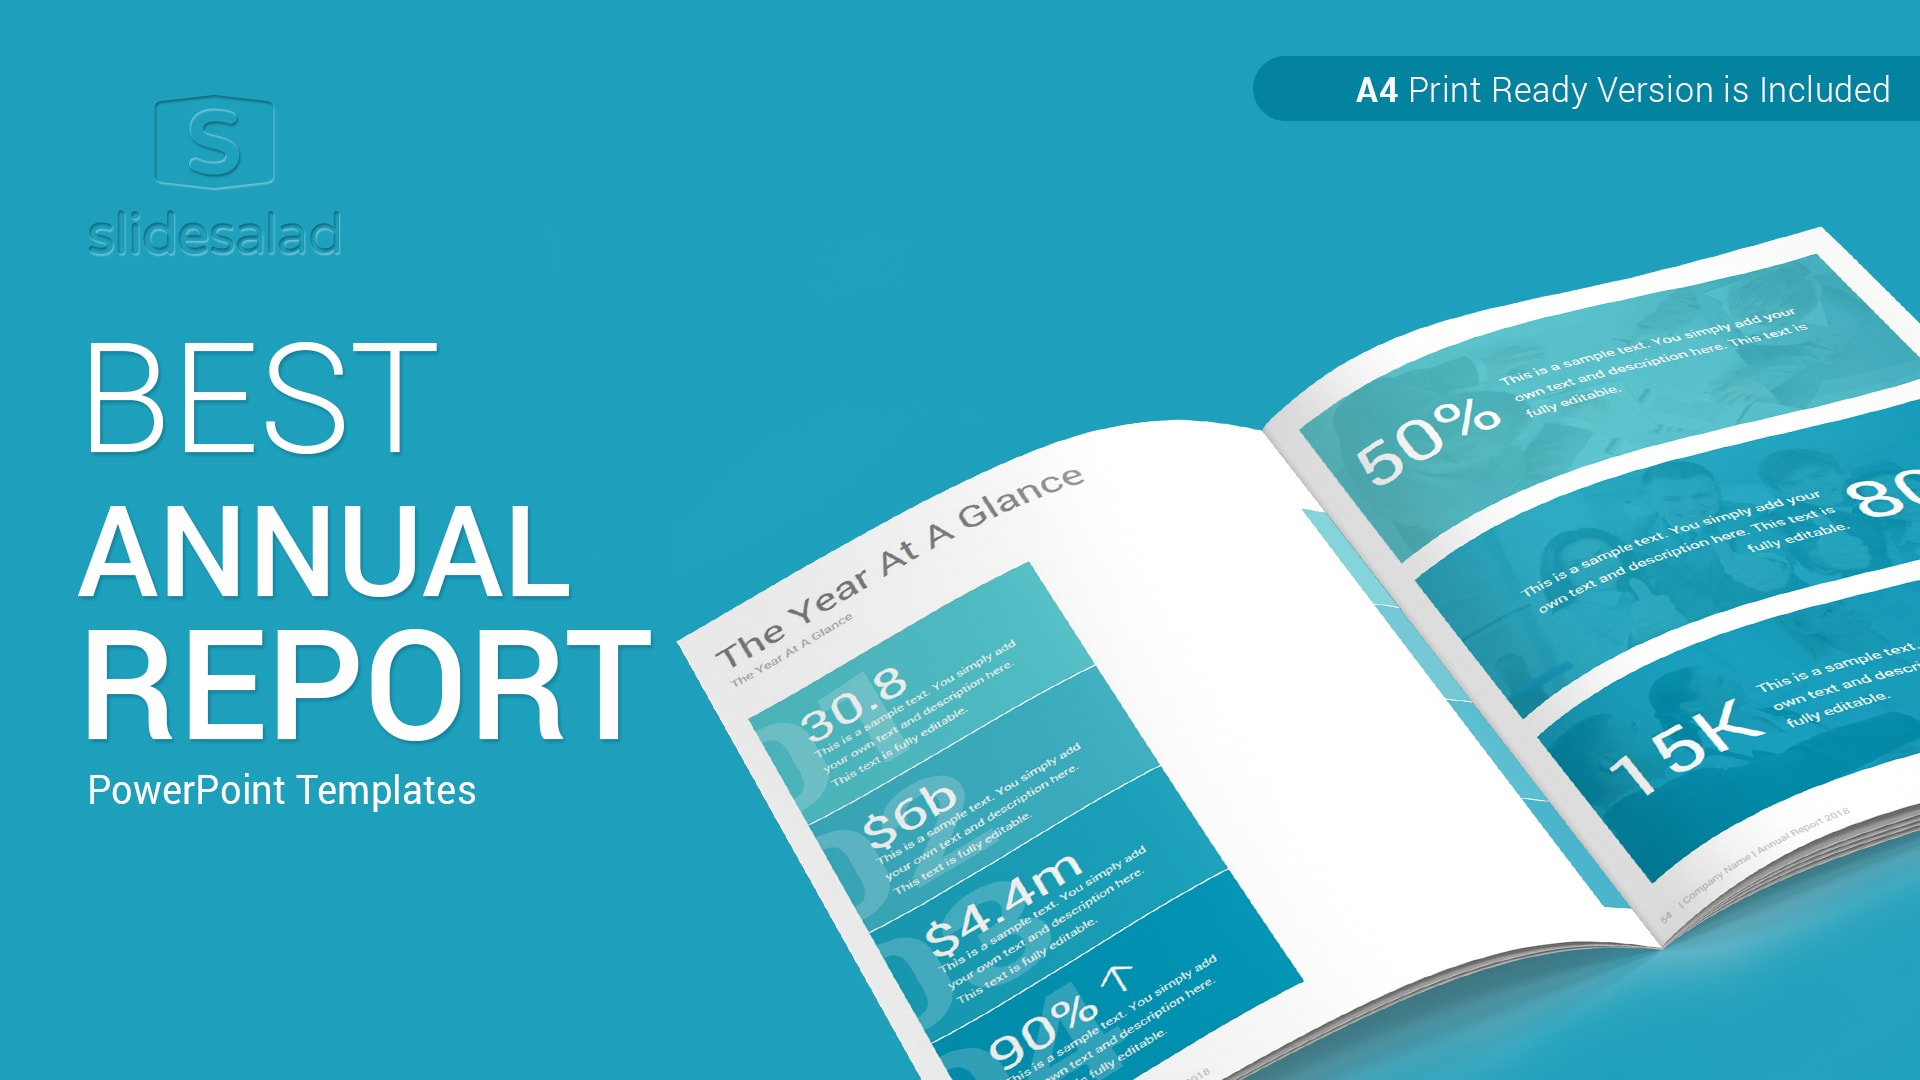 Best Annual Report PowerPoint Presentation Templates – Top Selling PPT Templates With Animated Slides